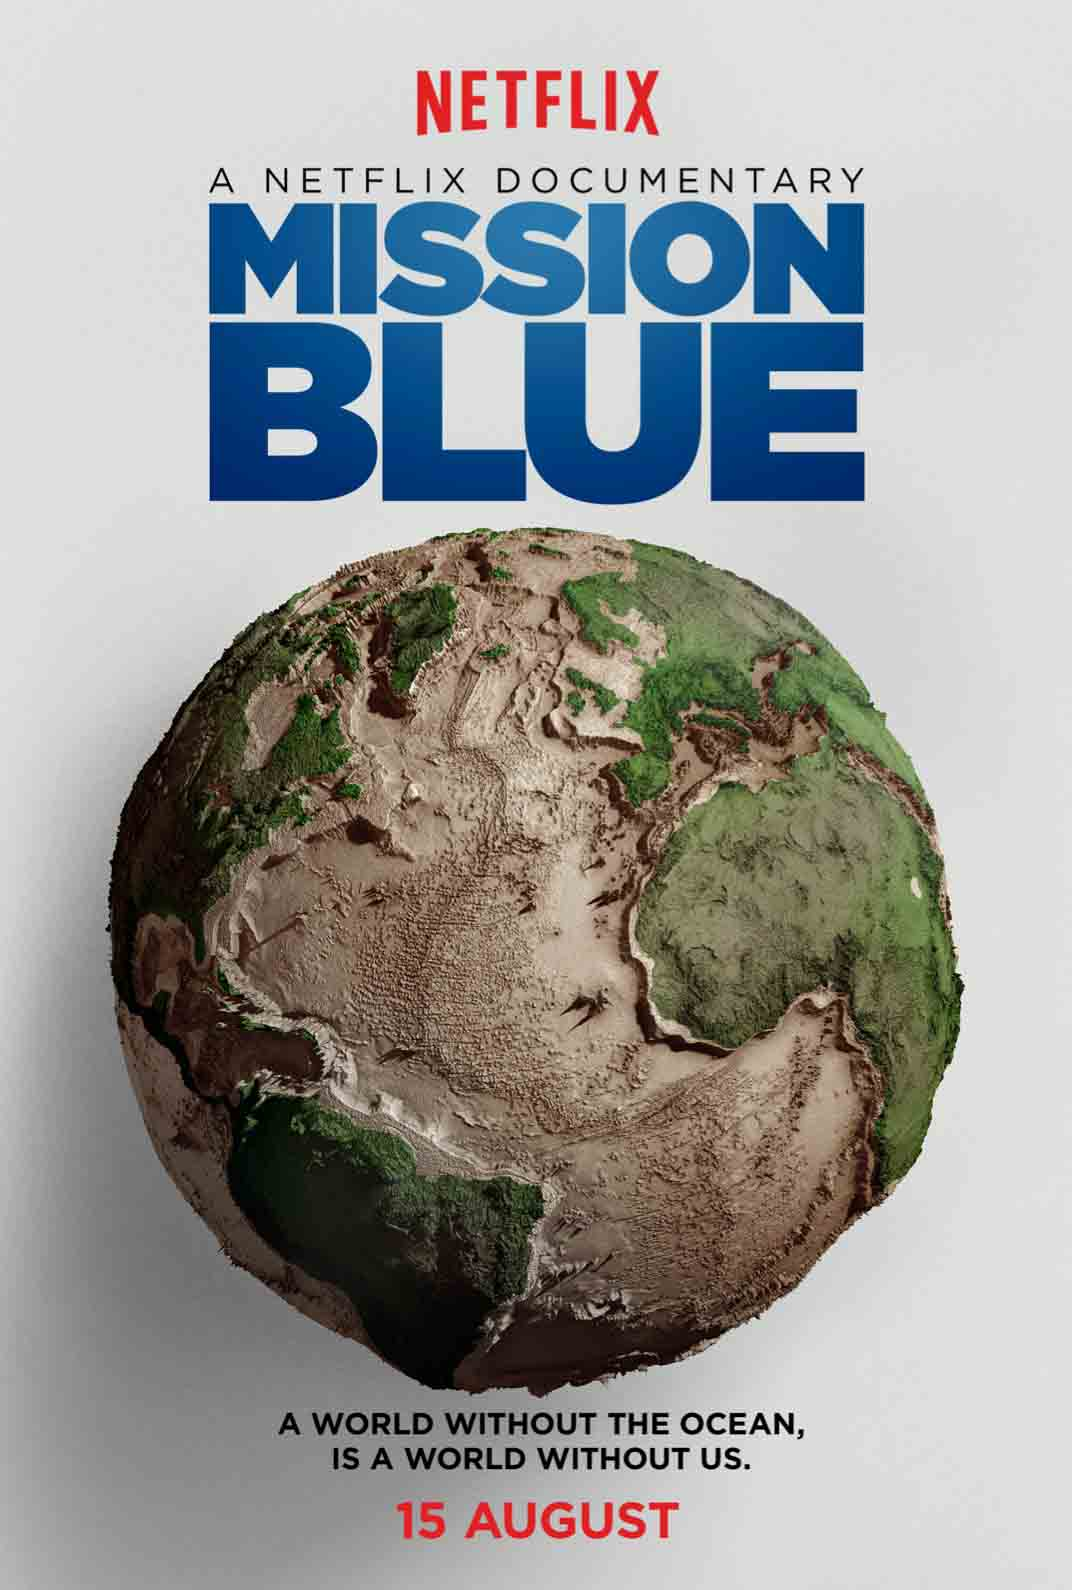 Mission Blue Documentary